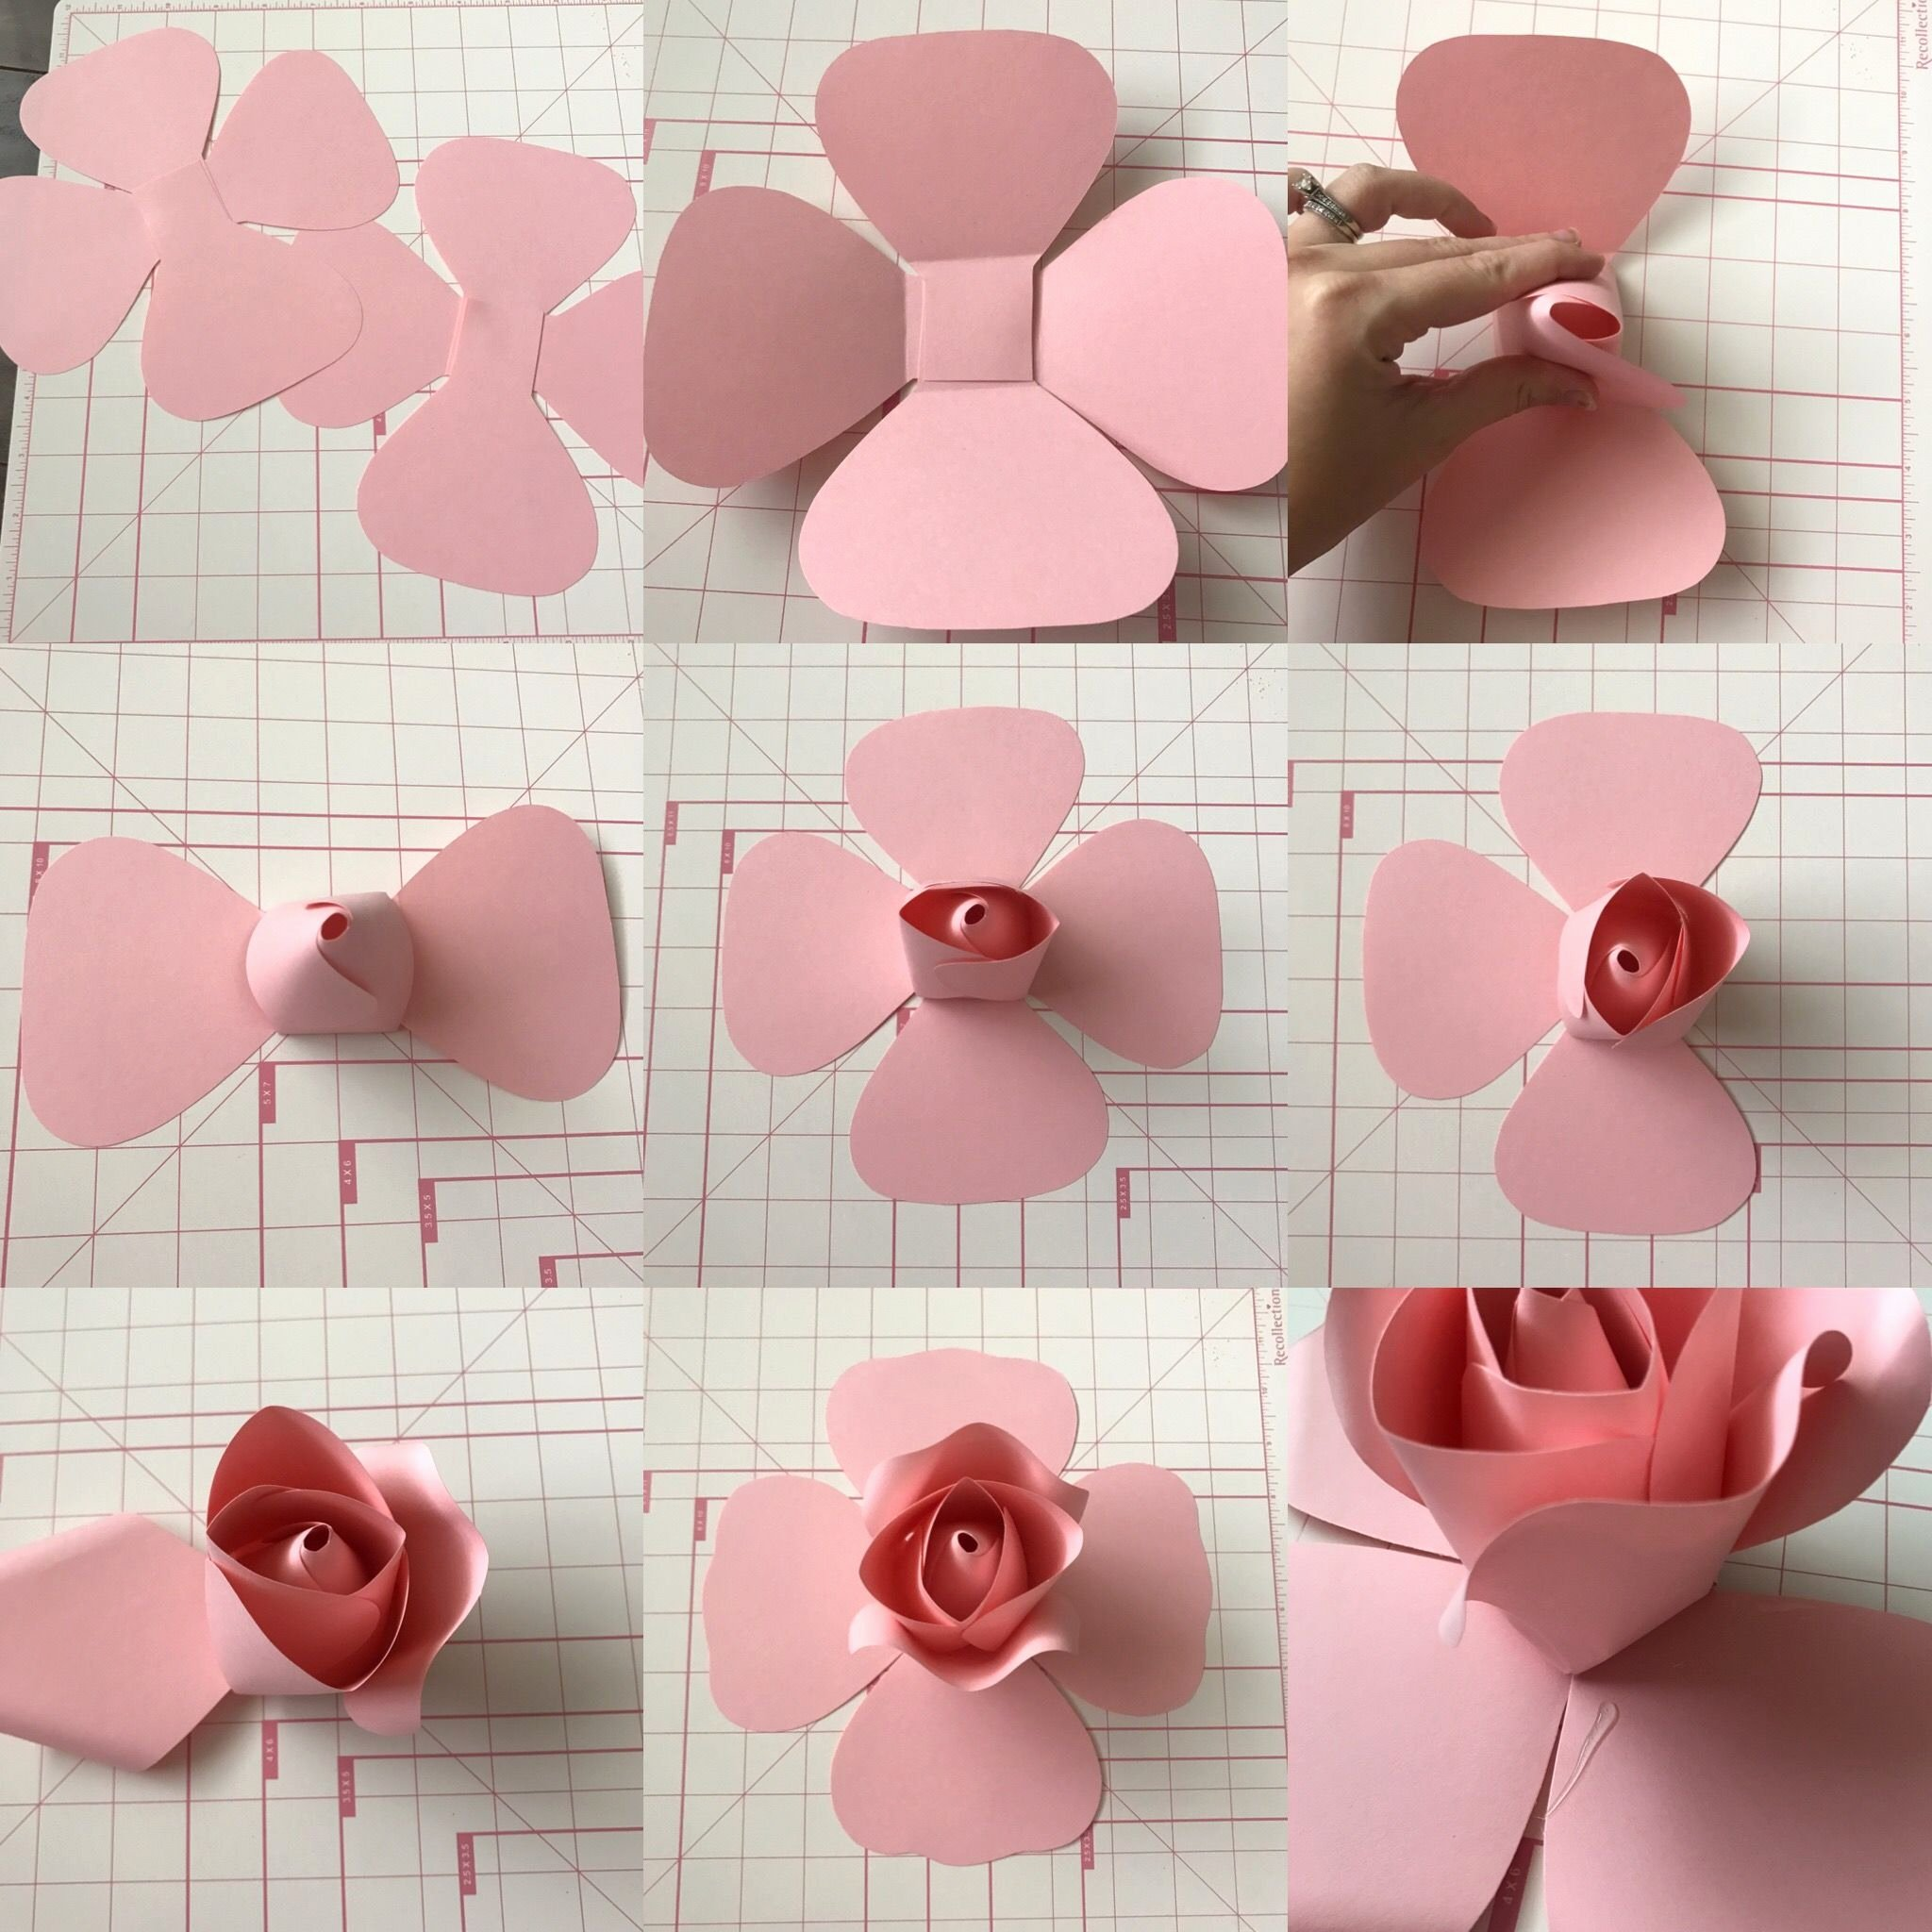 Template for Paper Flowers Awesome Free Templates and Tutorial On Ann Neville Design Blog